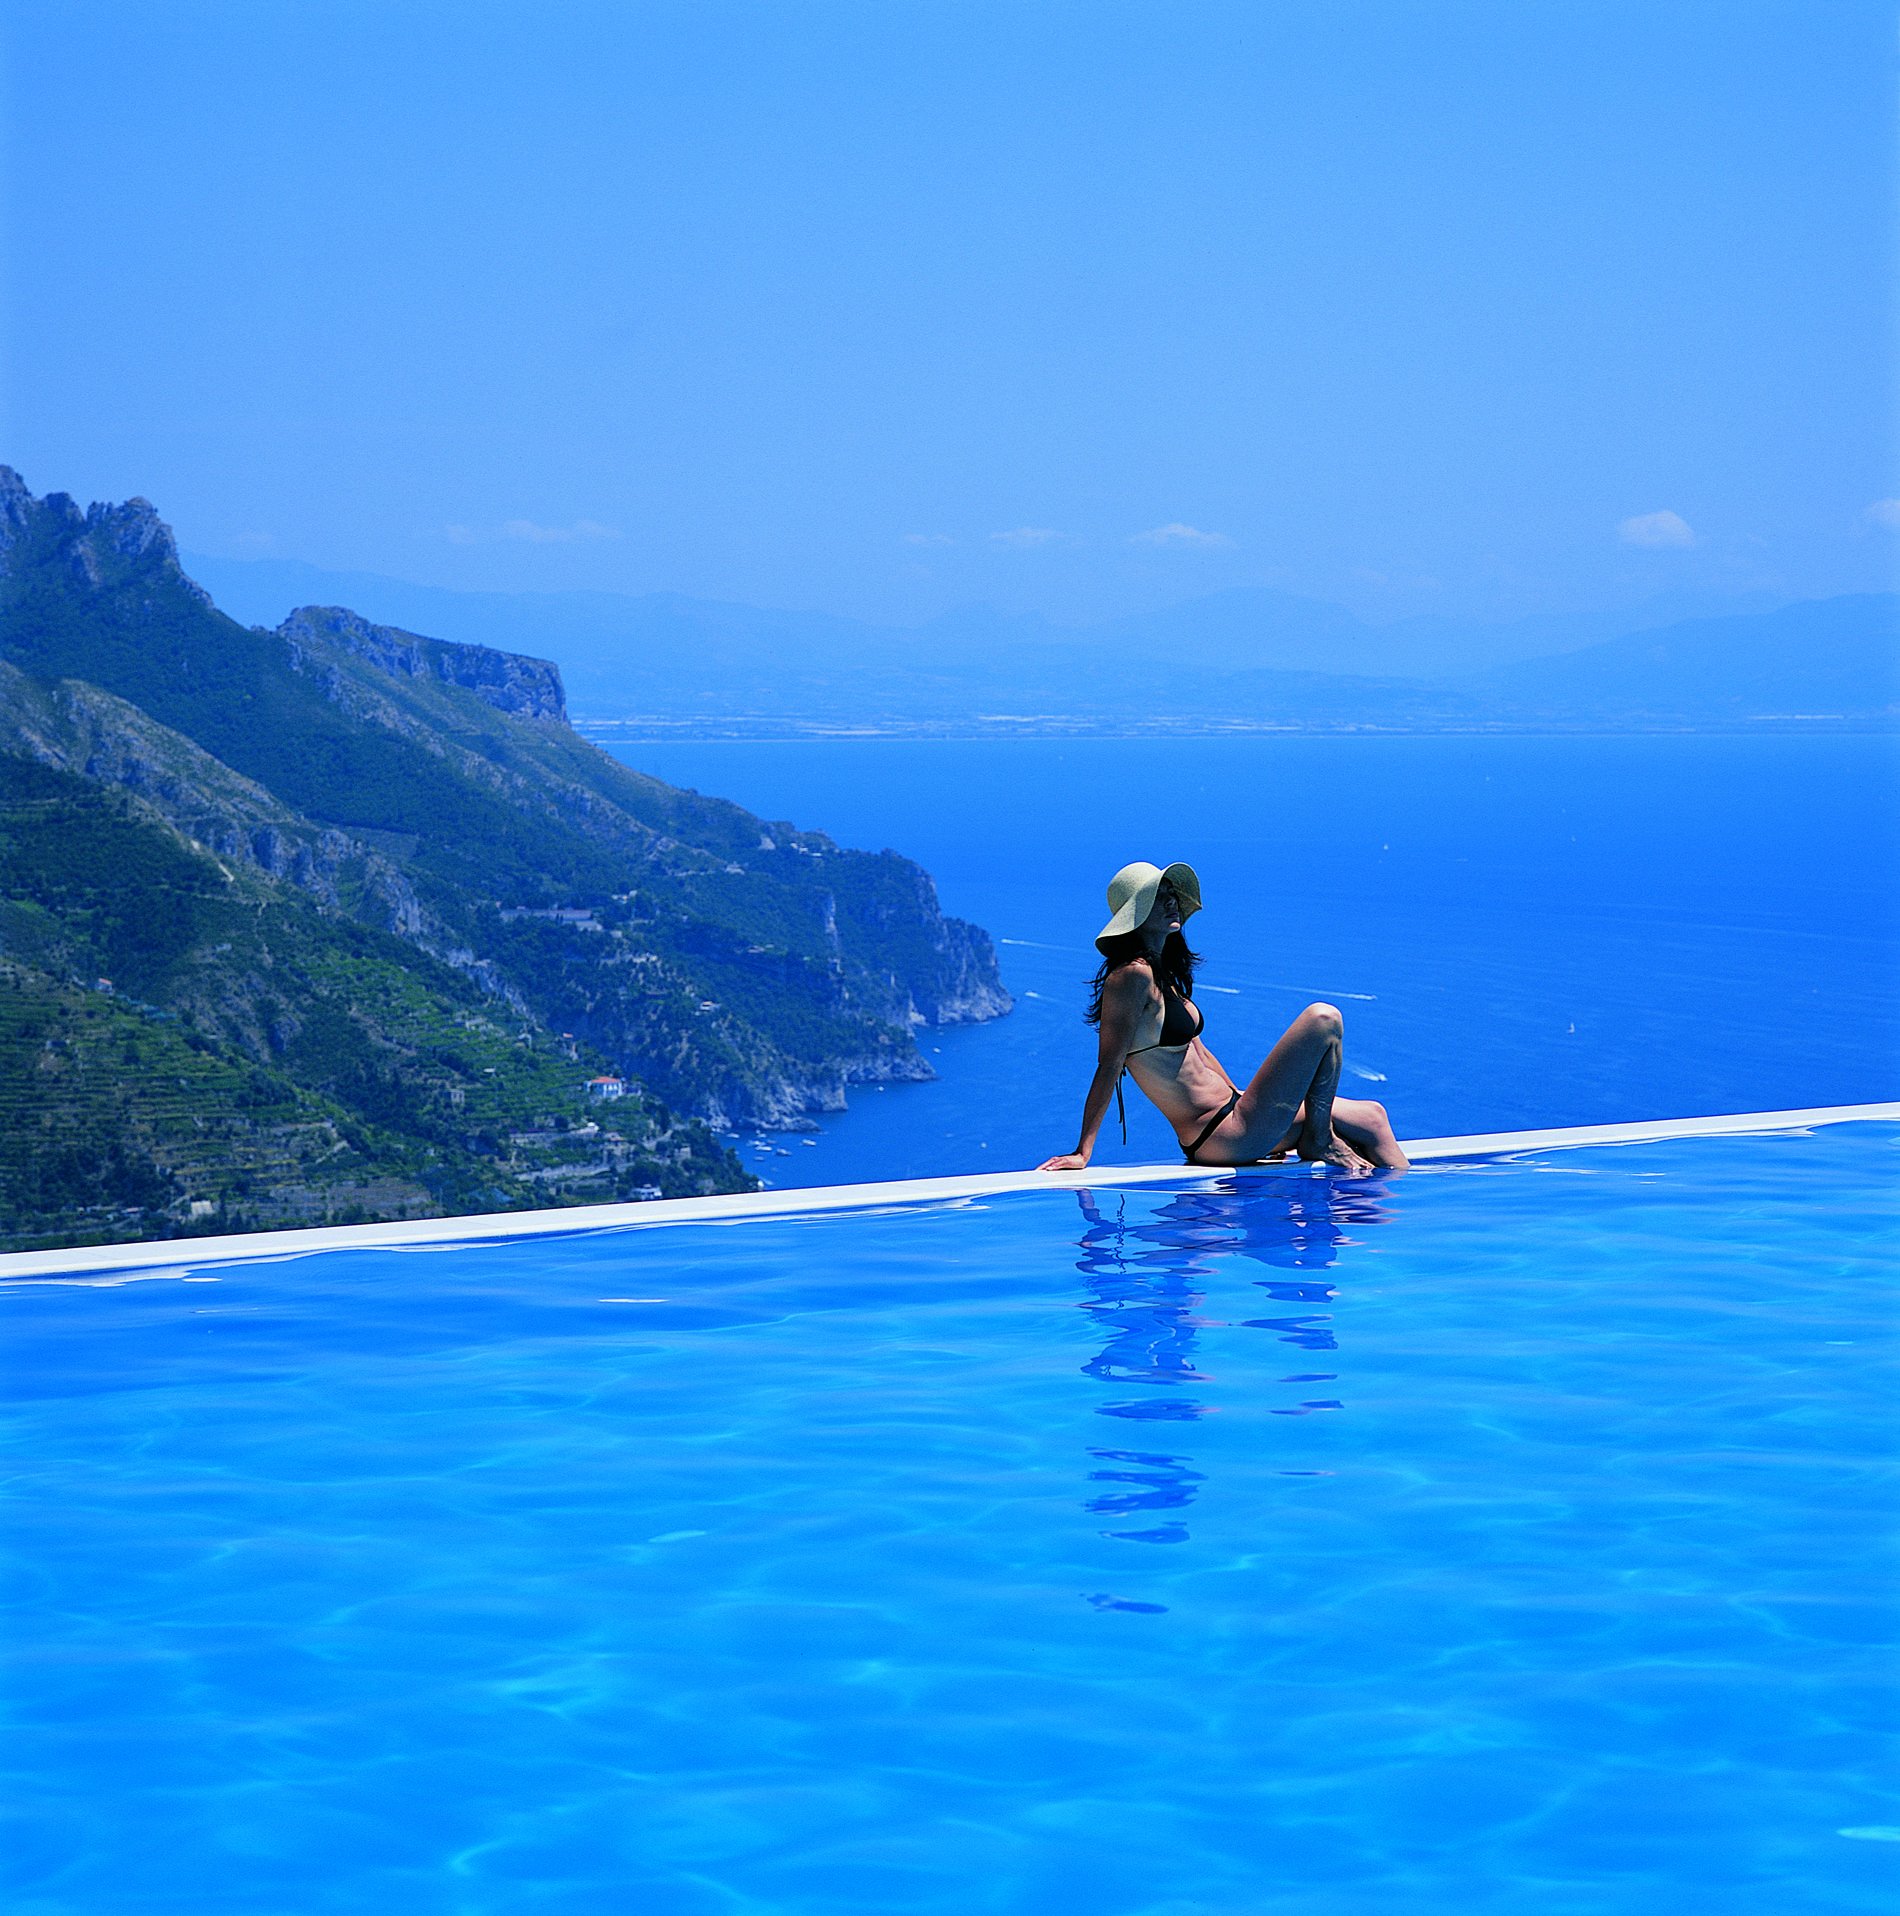 Hotel caruso belvedere amalfi coast italy luxury - Hotel in sorrento italy with swimming pool ...